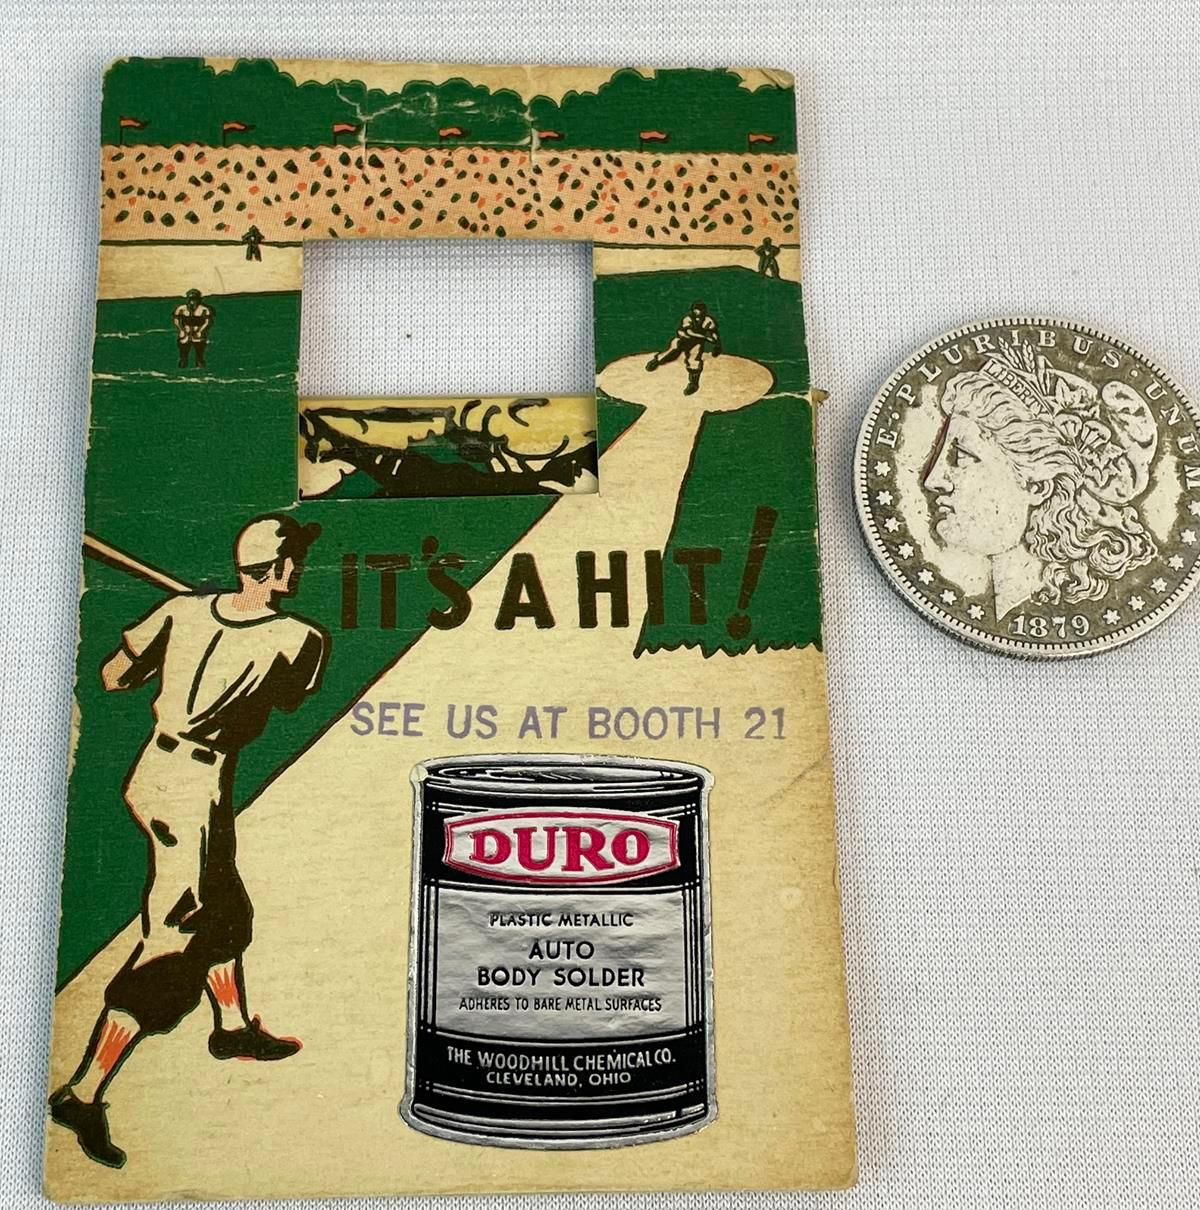 RARE Vintage 1942 Duro Auto Body Solder Advertising Baseball Western Auto Store Canandaigua, NY Game